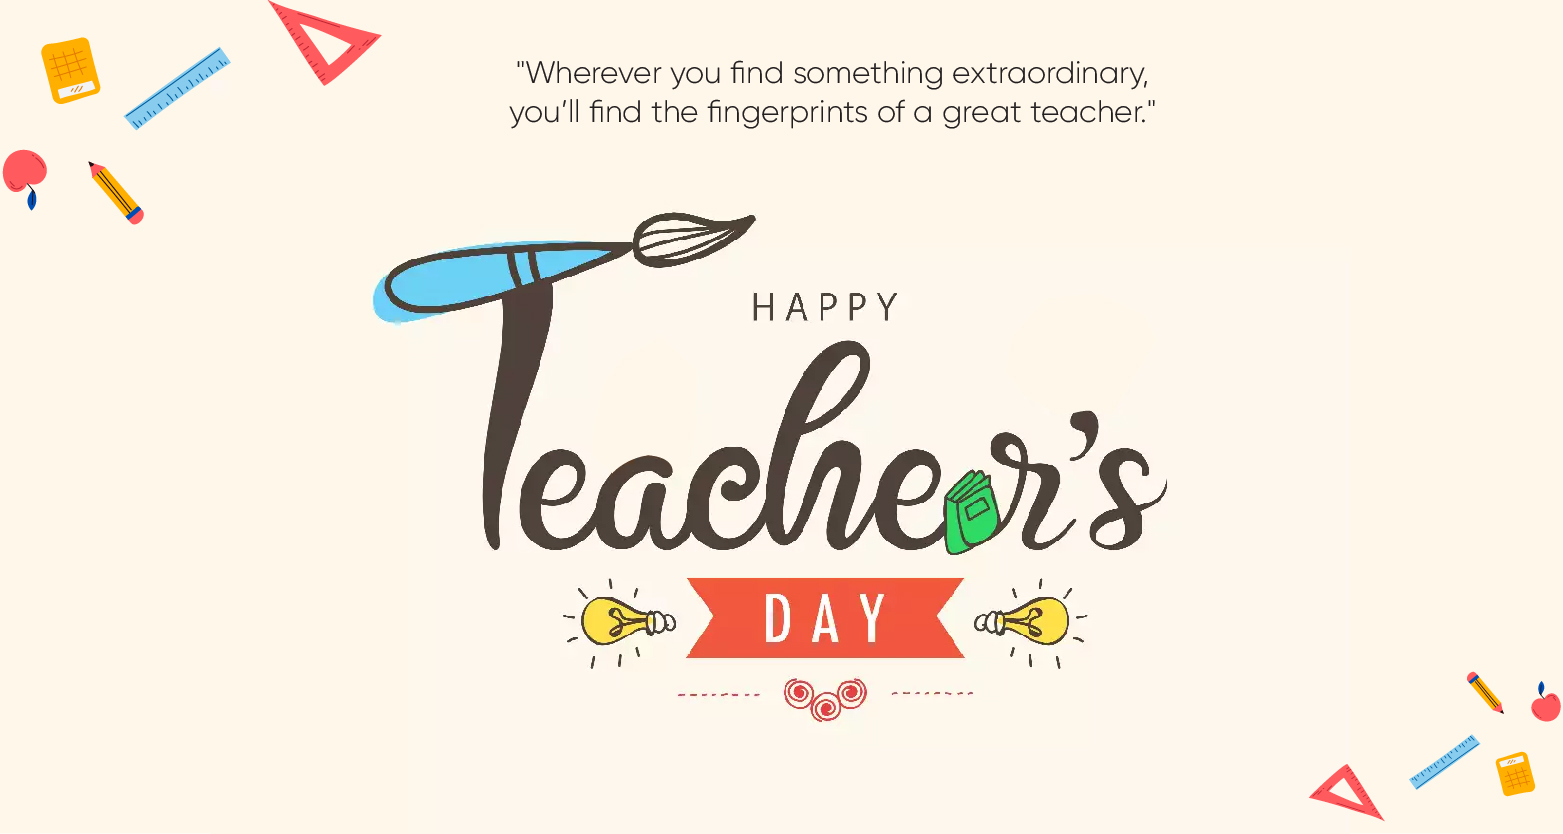 Happpy Teachers Day wishes SMS Images